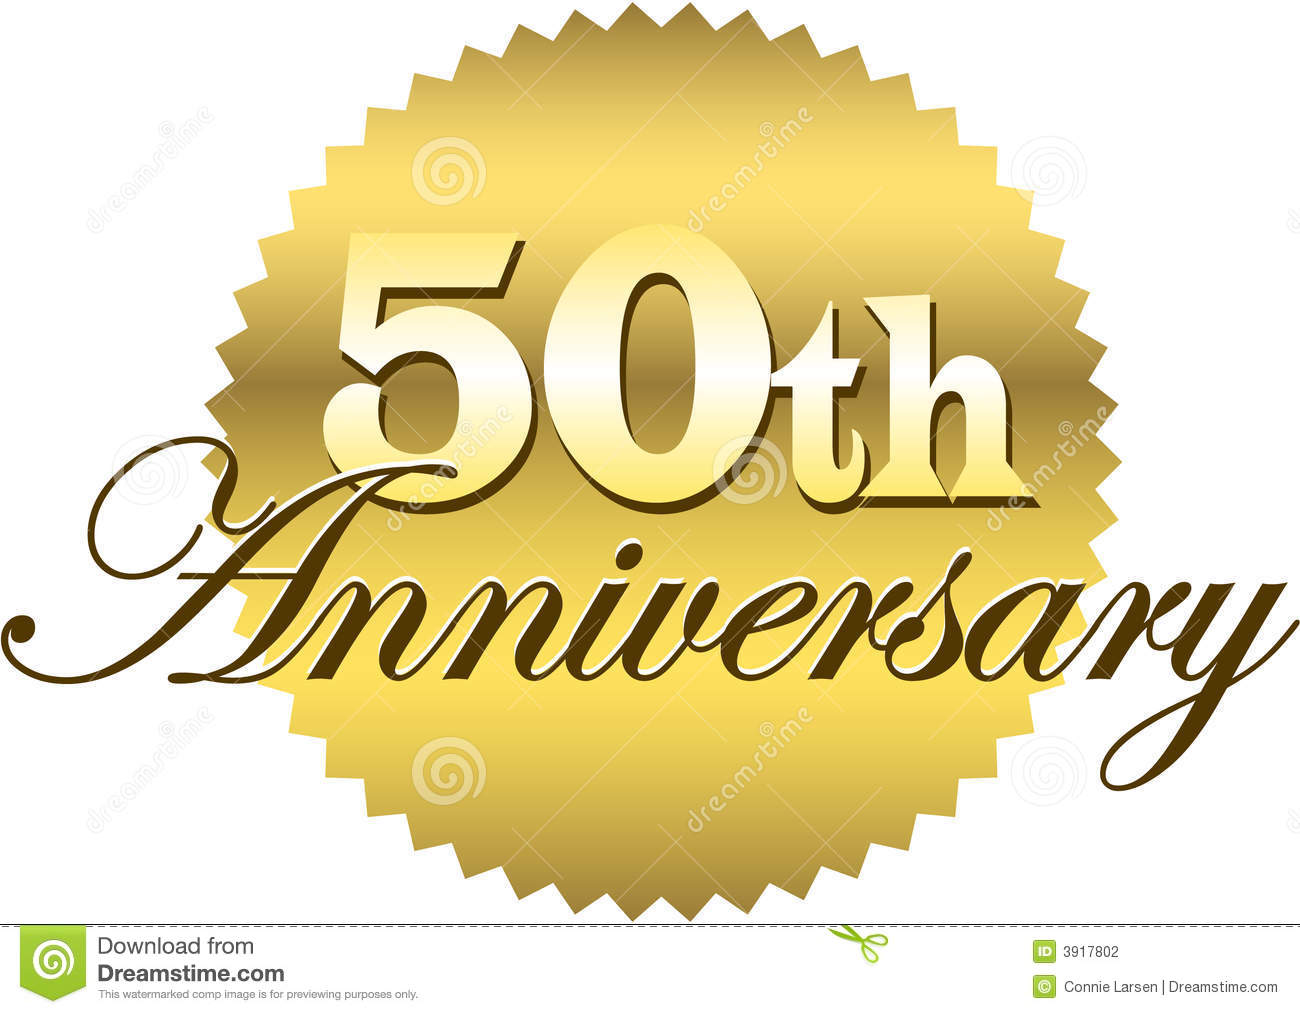 Illustration of a golden seal with the inscription 50th anniversary